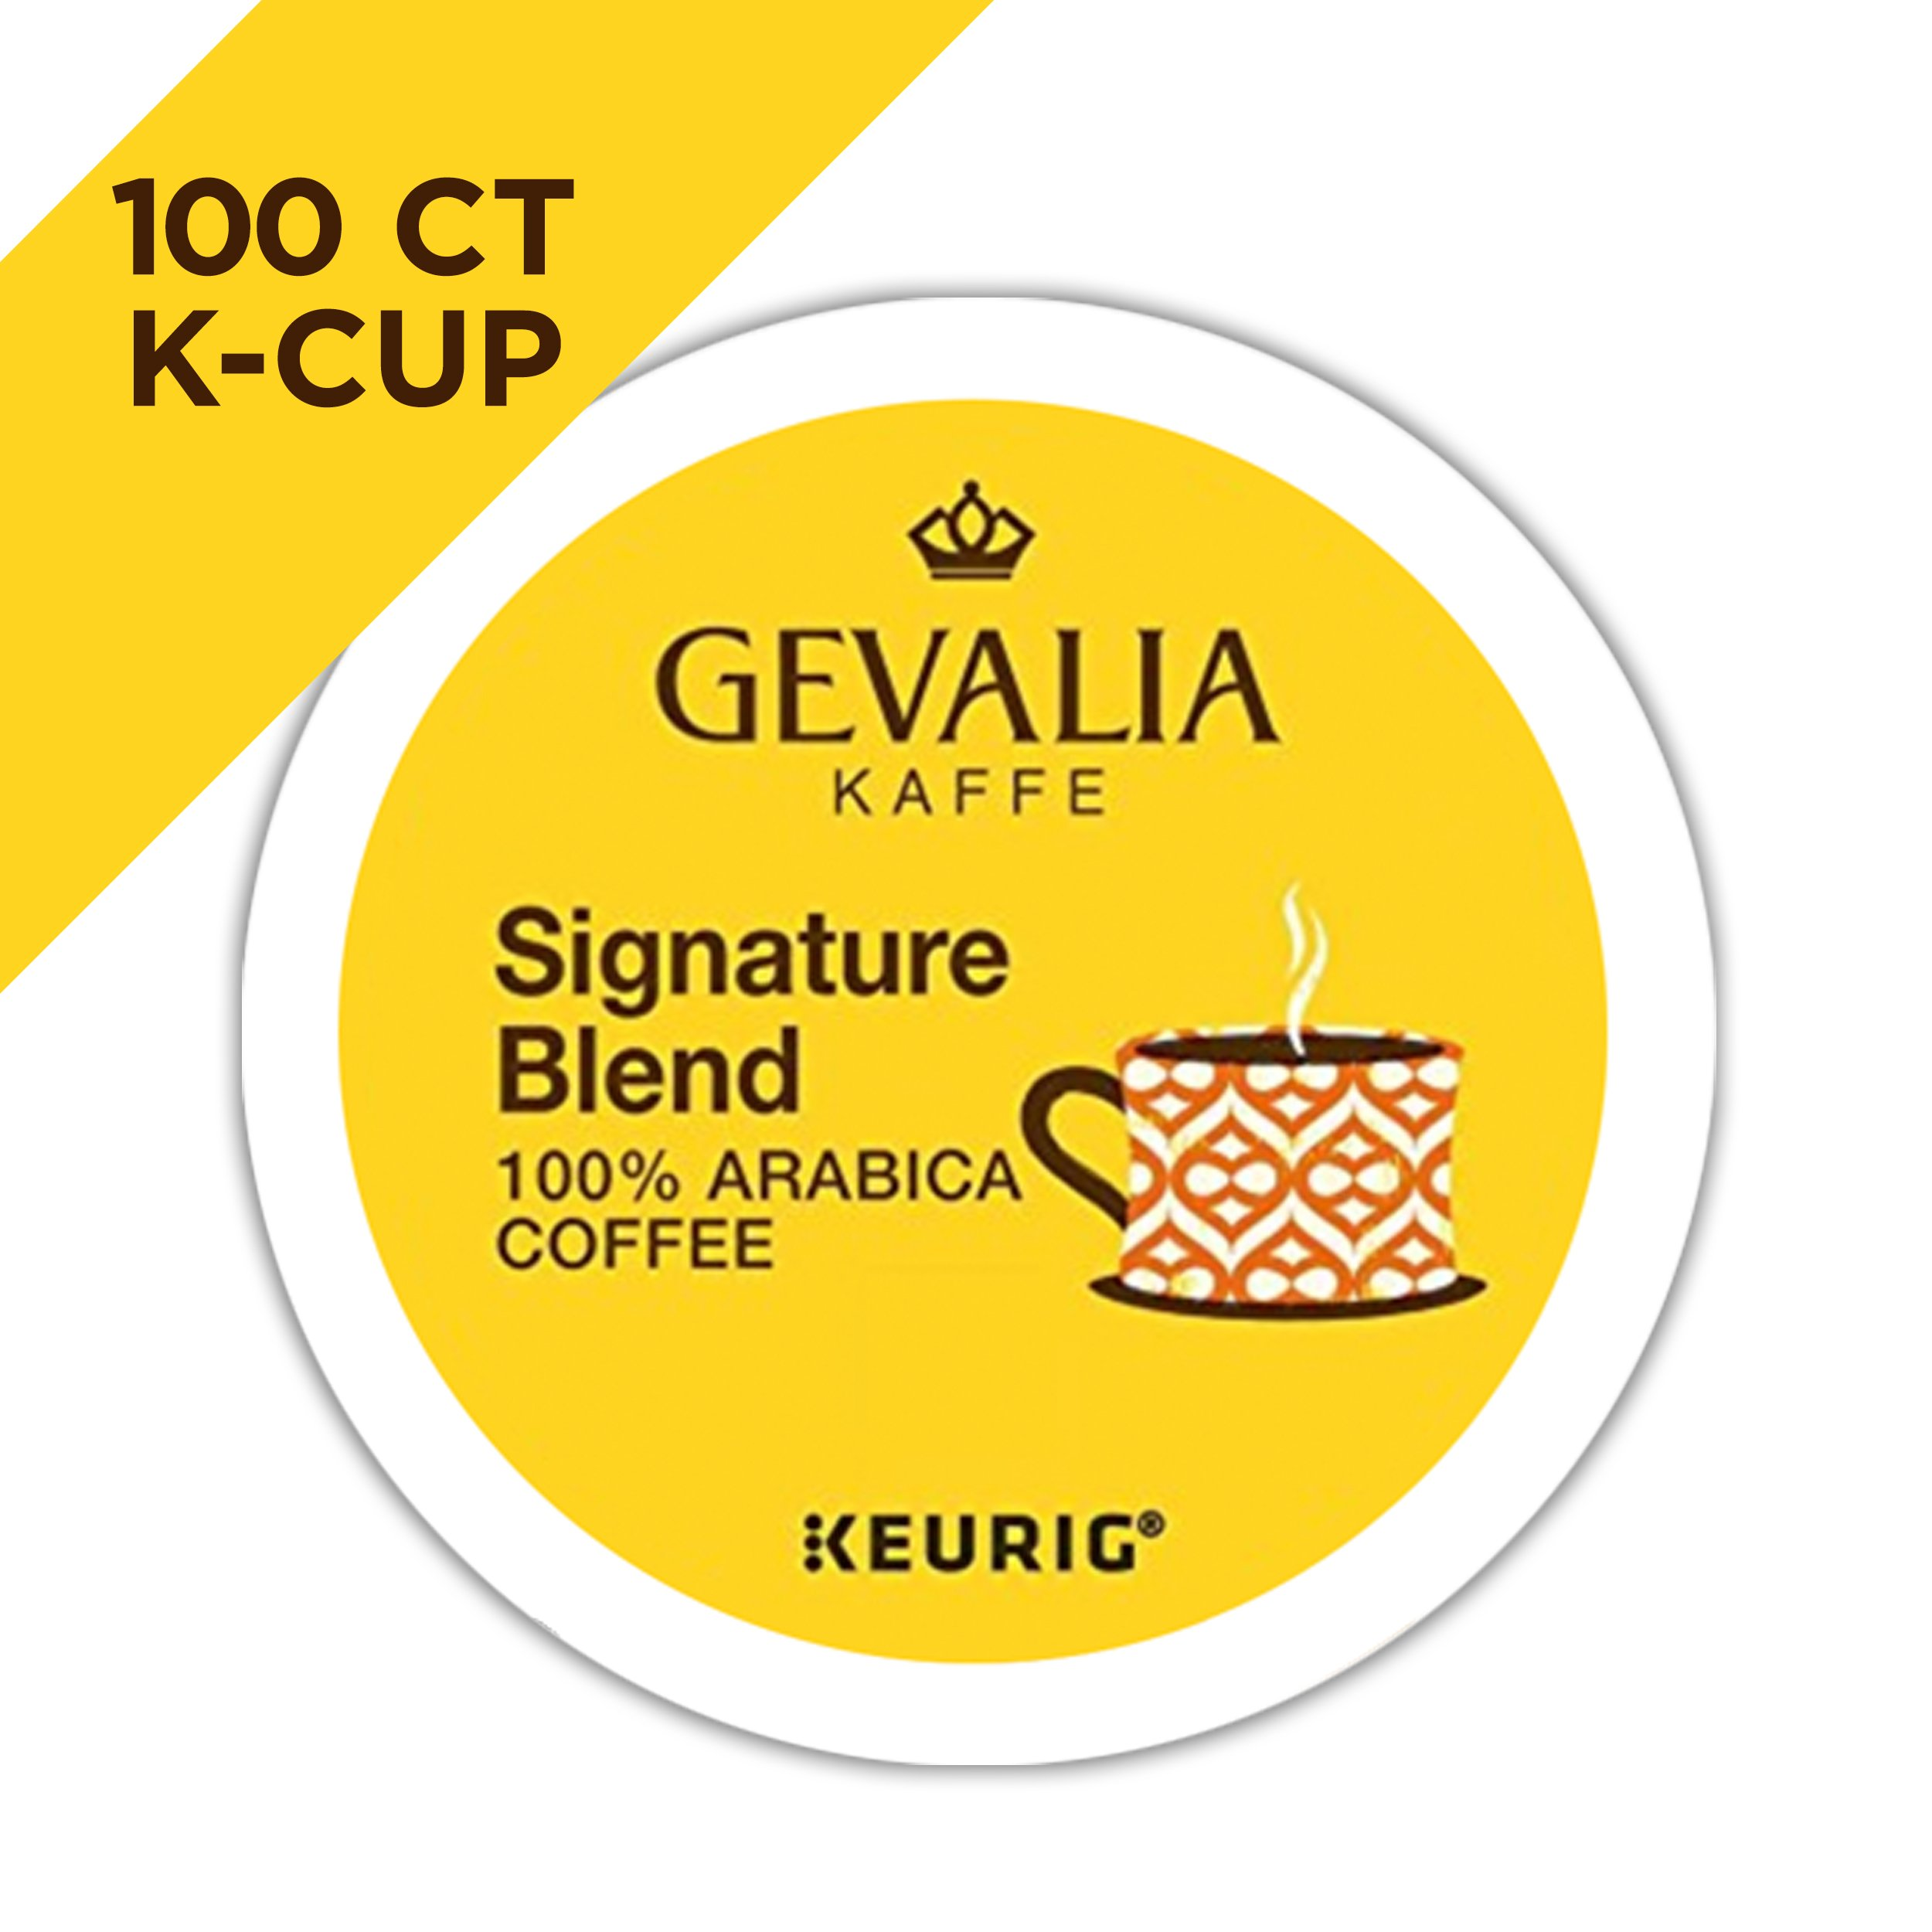 Gevalia Signature Blend Coffee, K-CUP Pods, 100 Count by Gevalia (Image #3)